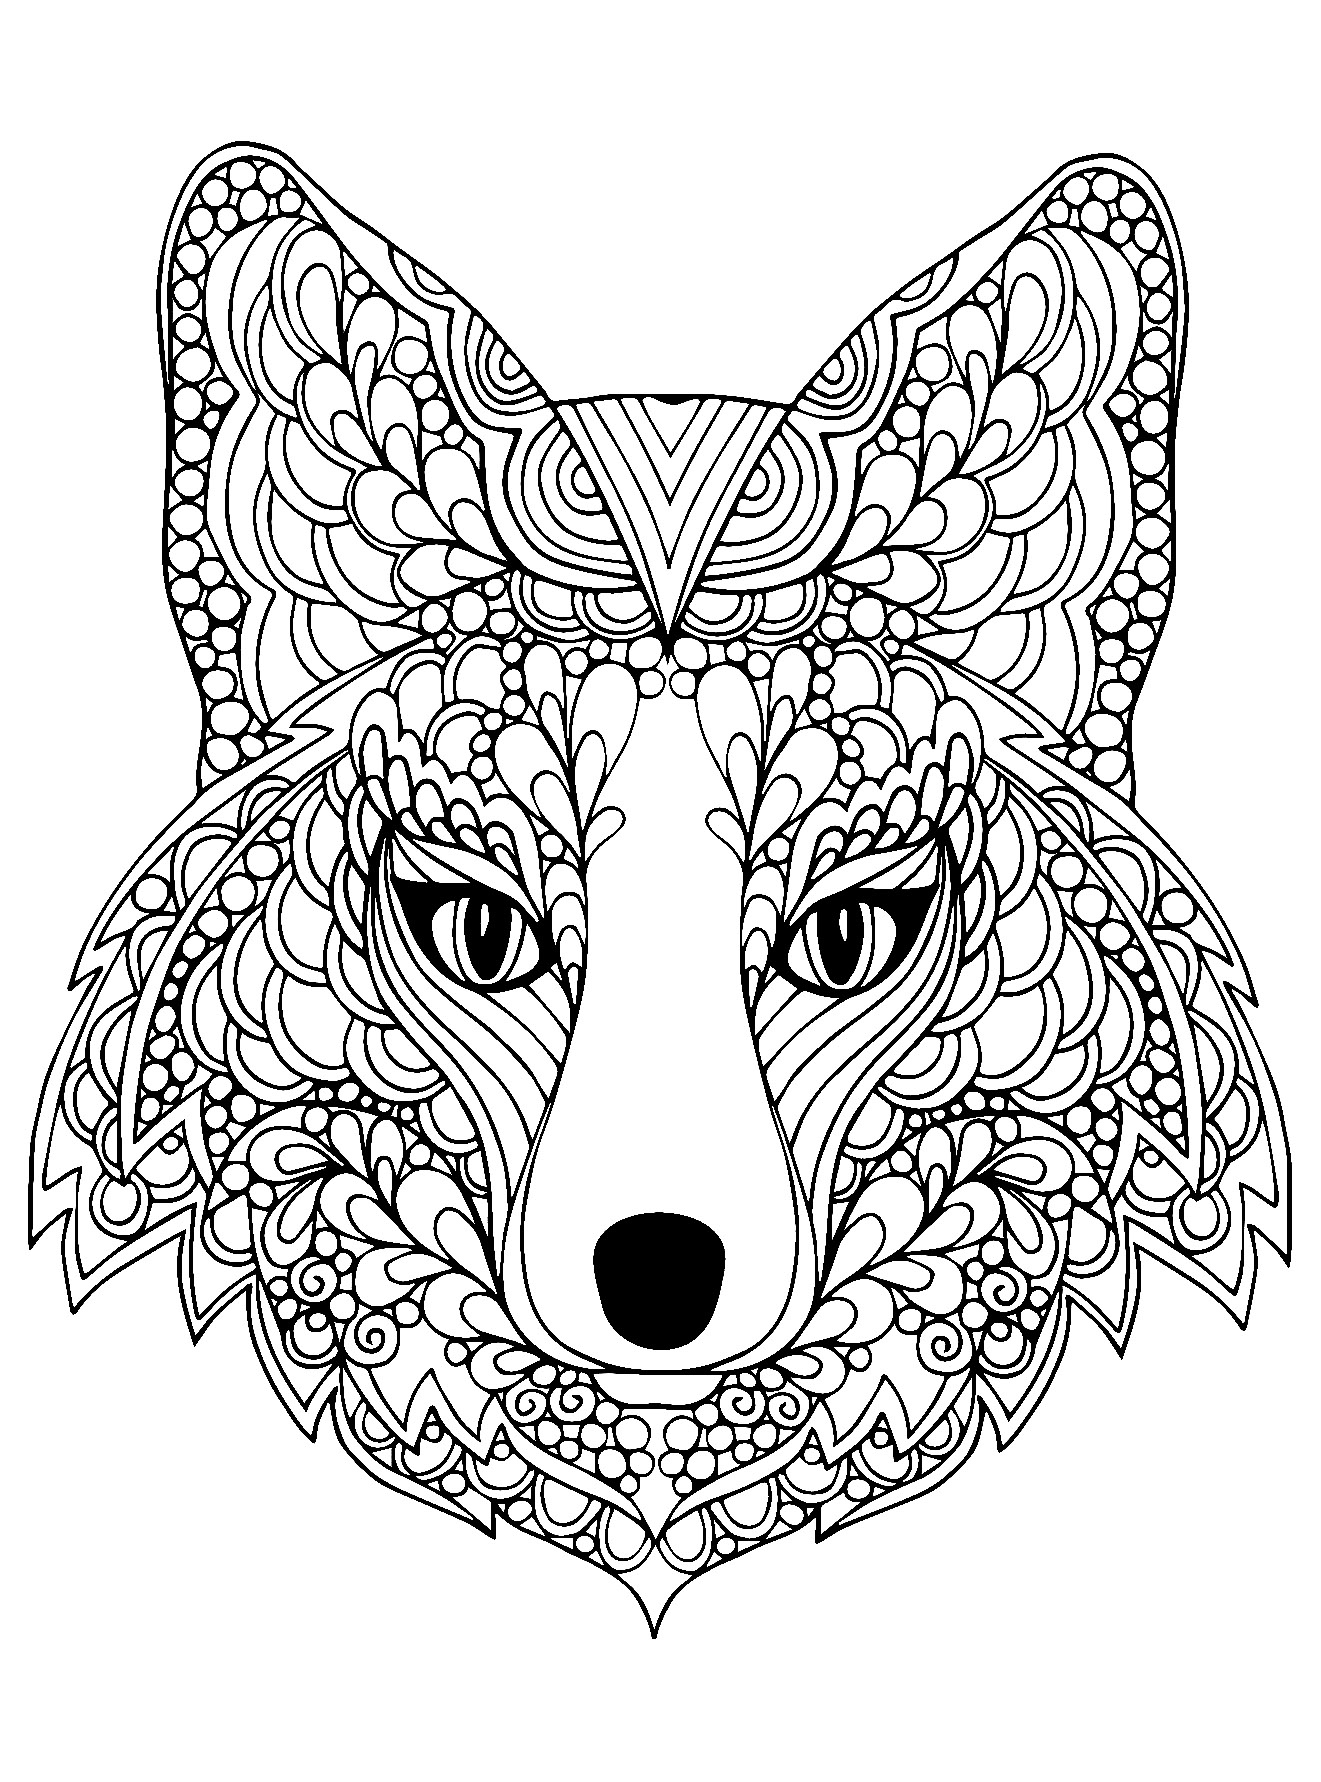 best colouring pages to print detailed animal coloring pages for adults at getcolorings best to pages print colouring